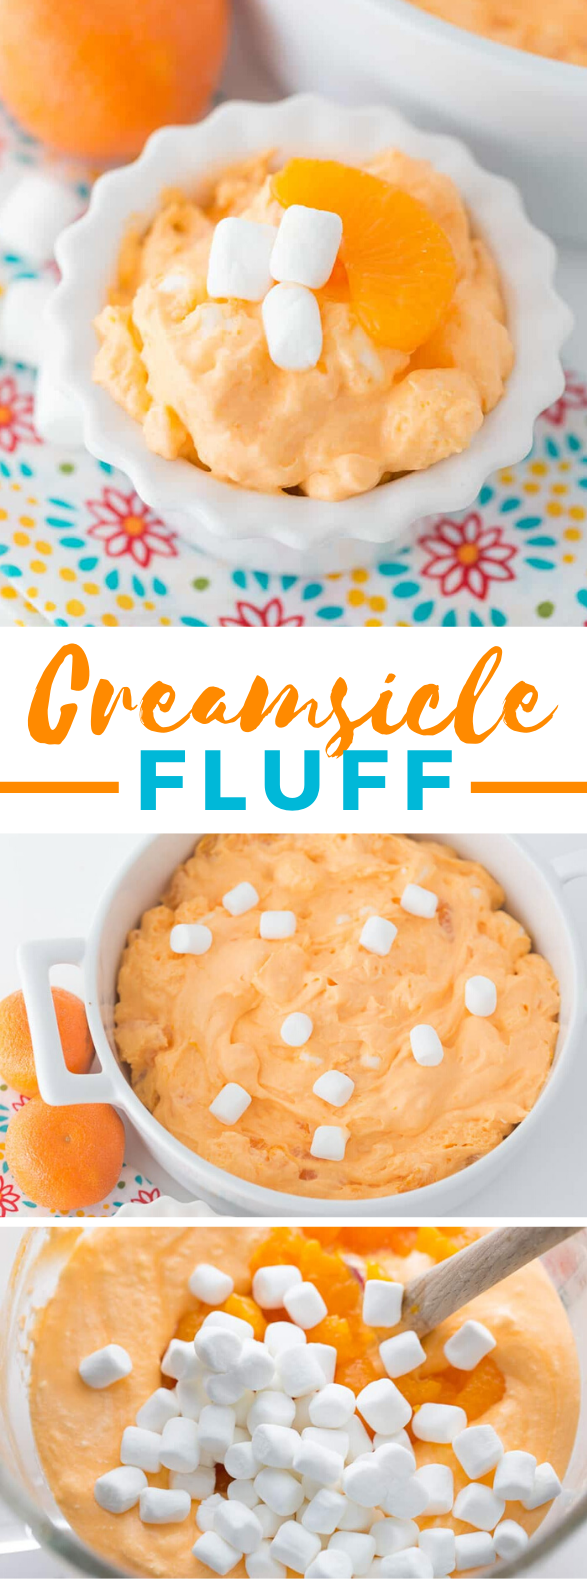 CREAMSICLE FLUFF #desserts #marshmallows